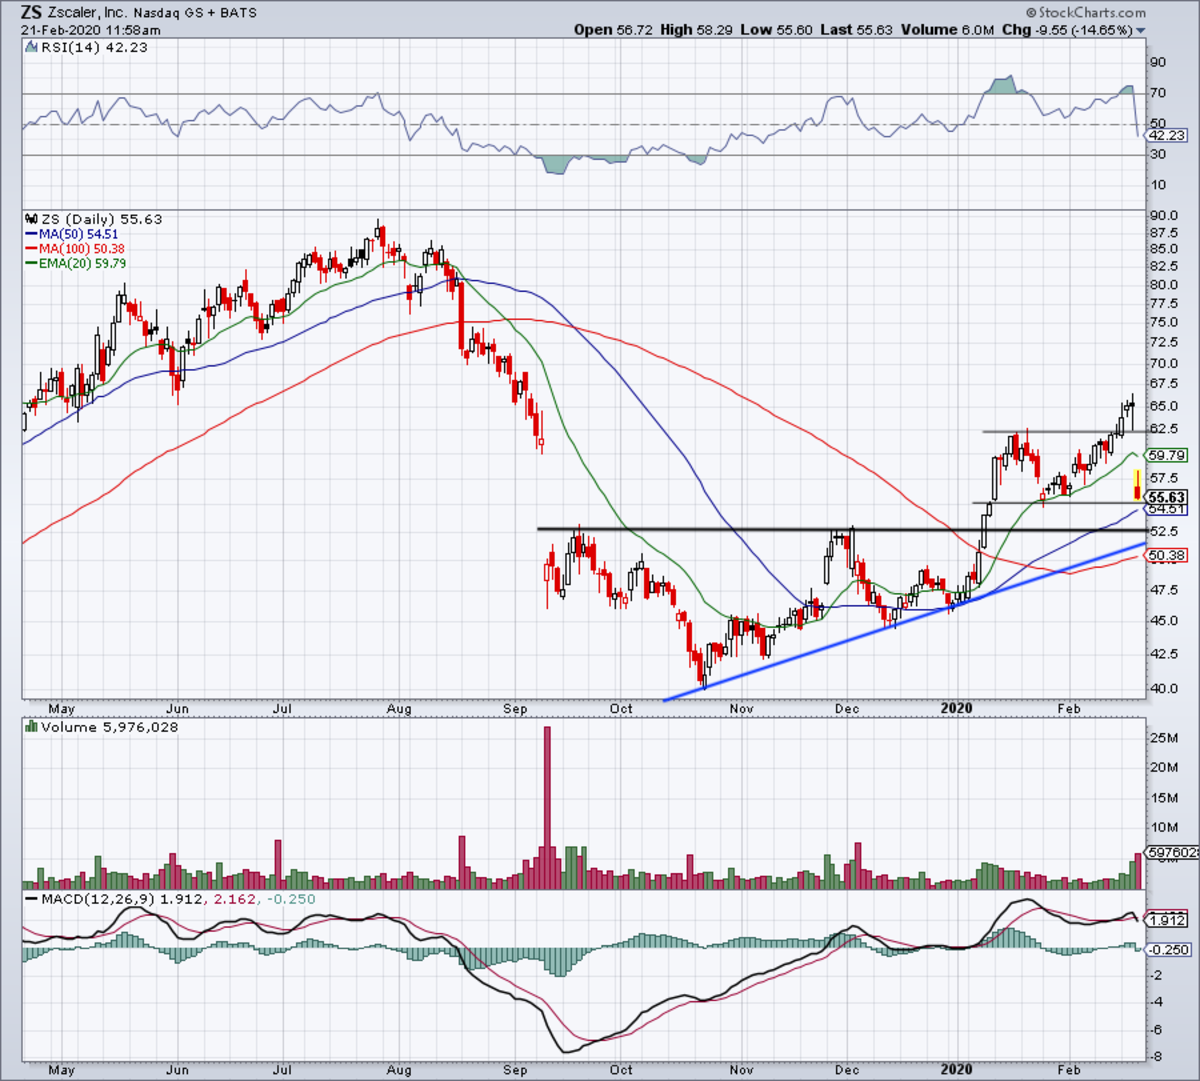 Daily chart of Zscaler stock.